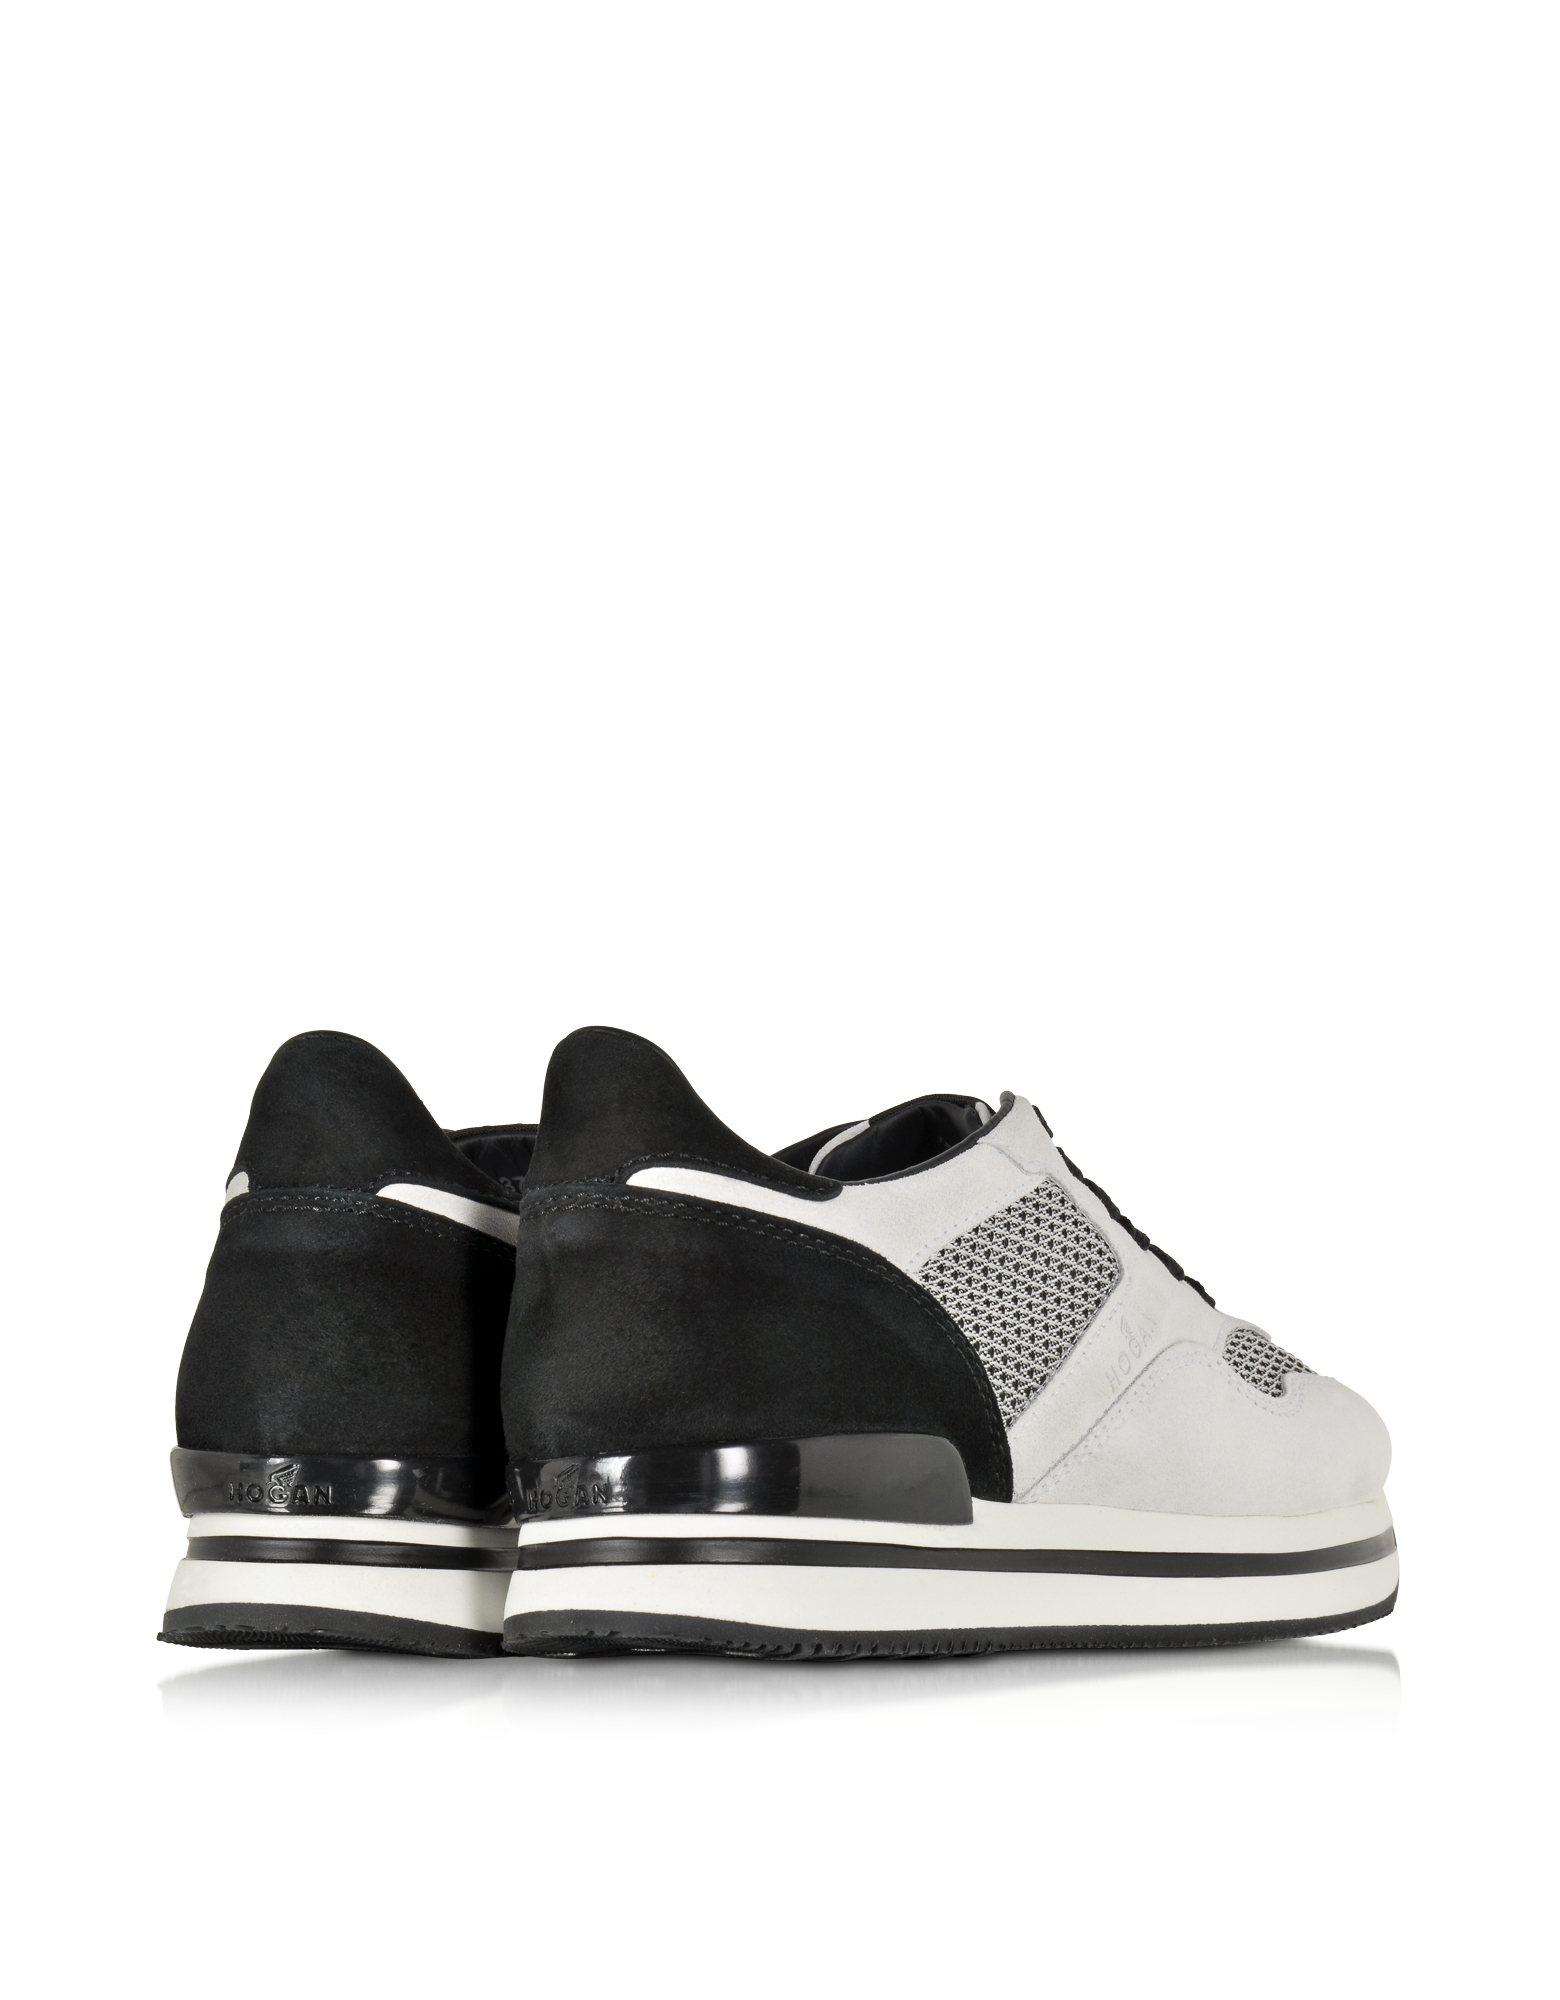 Forzieri Hogan Lyst Hogan Black And Off White Suede Sneaker In Black